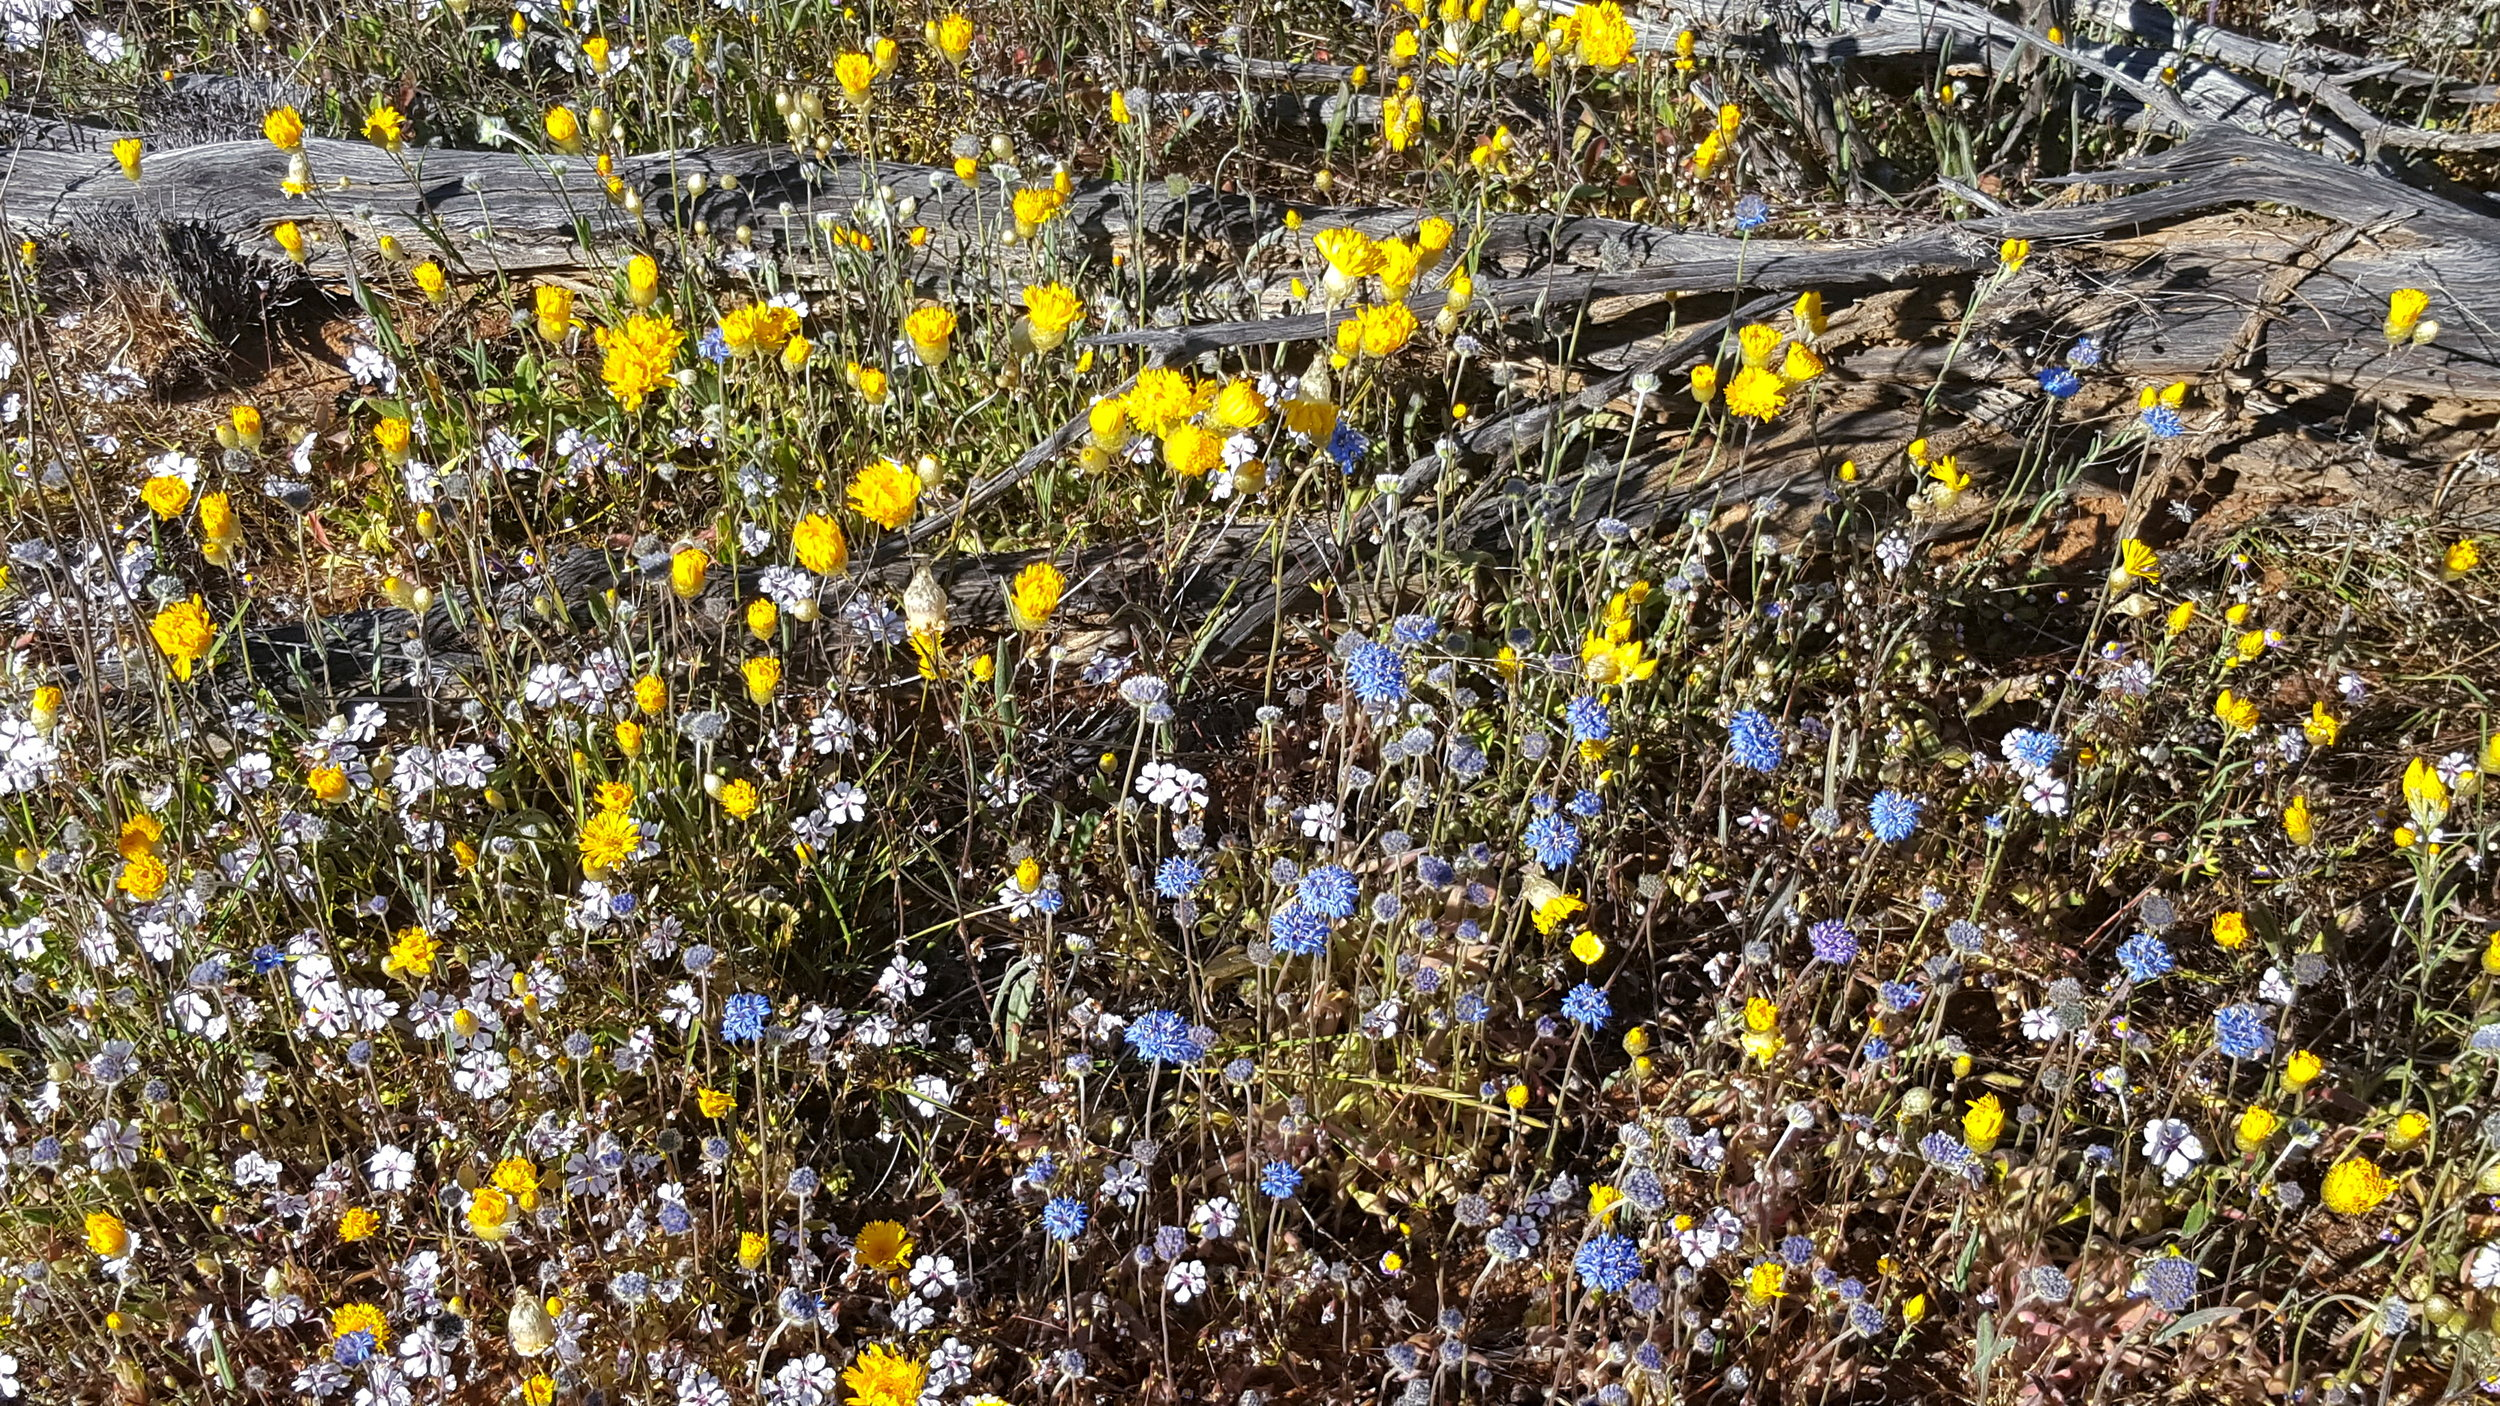 Mix of species in West Perenjori Reserve including  Velleia rosea  (white),  Podolepis canescens  (yellow), and  Brunonia australis  (blue)